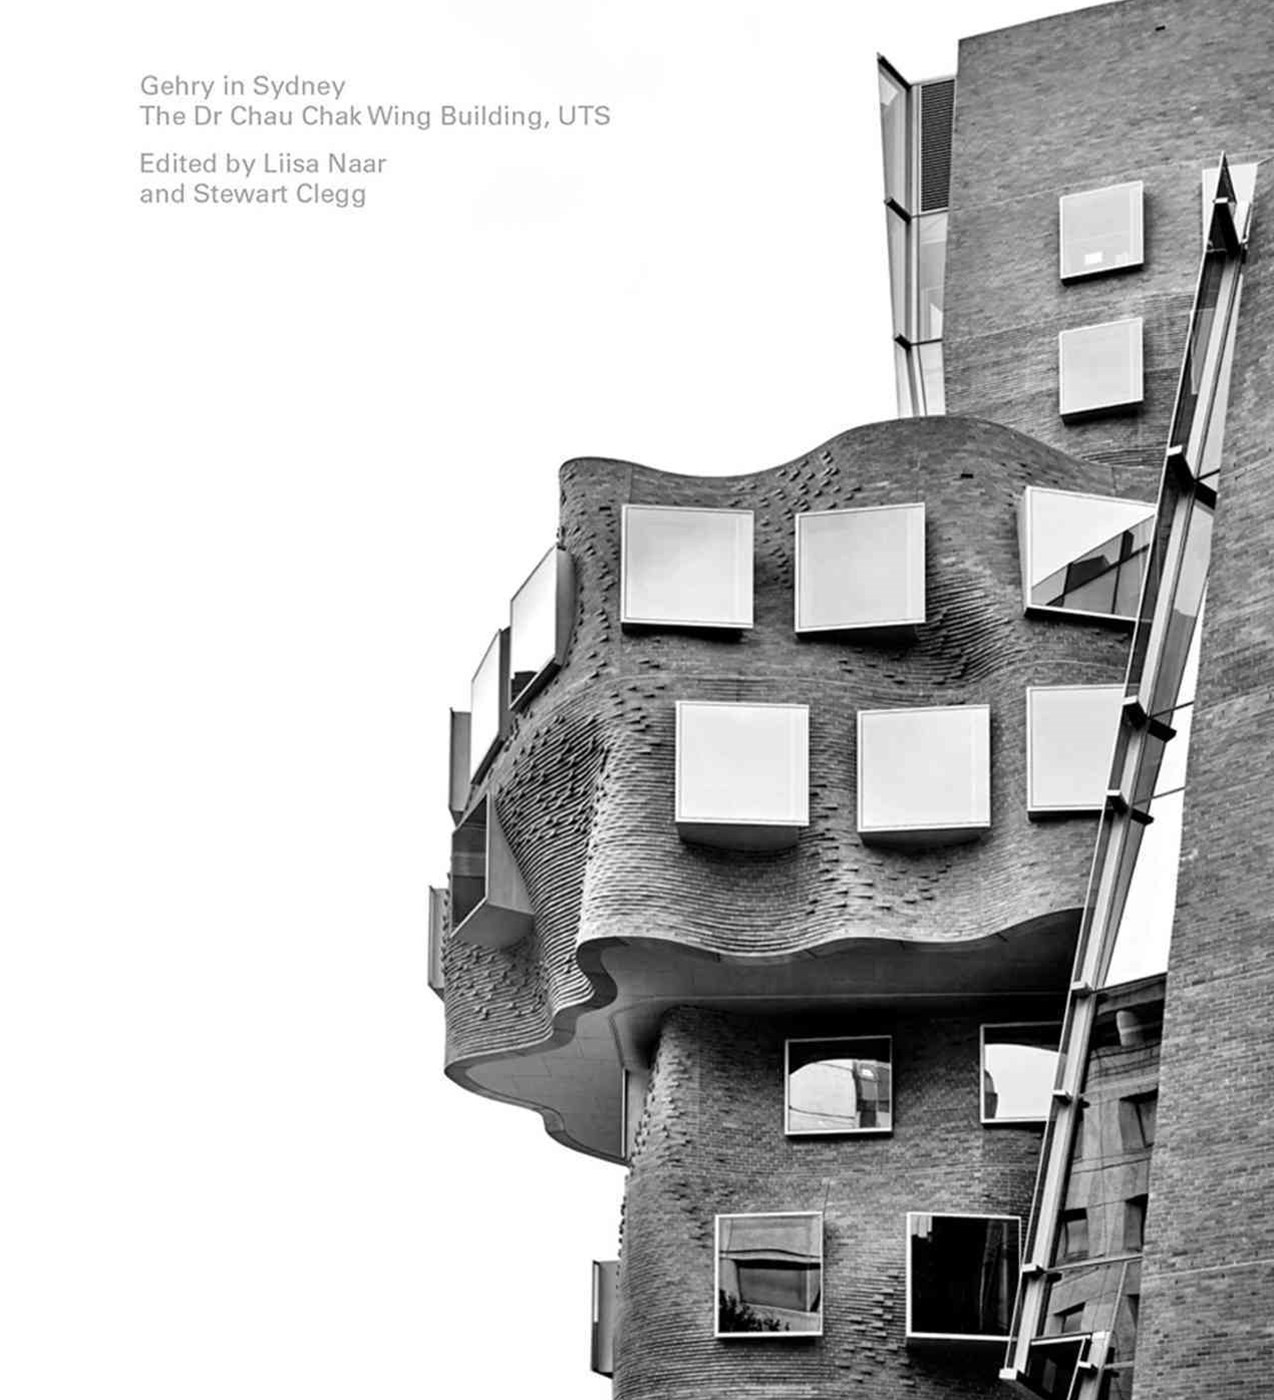 Gehry in Sydney: The Dr Chau Chak Wing Building, UTS